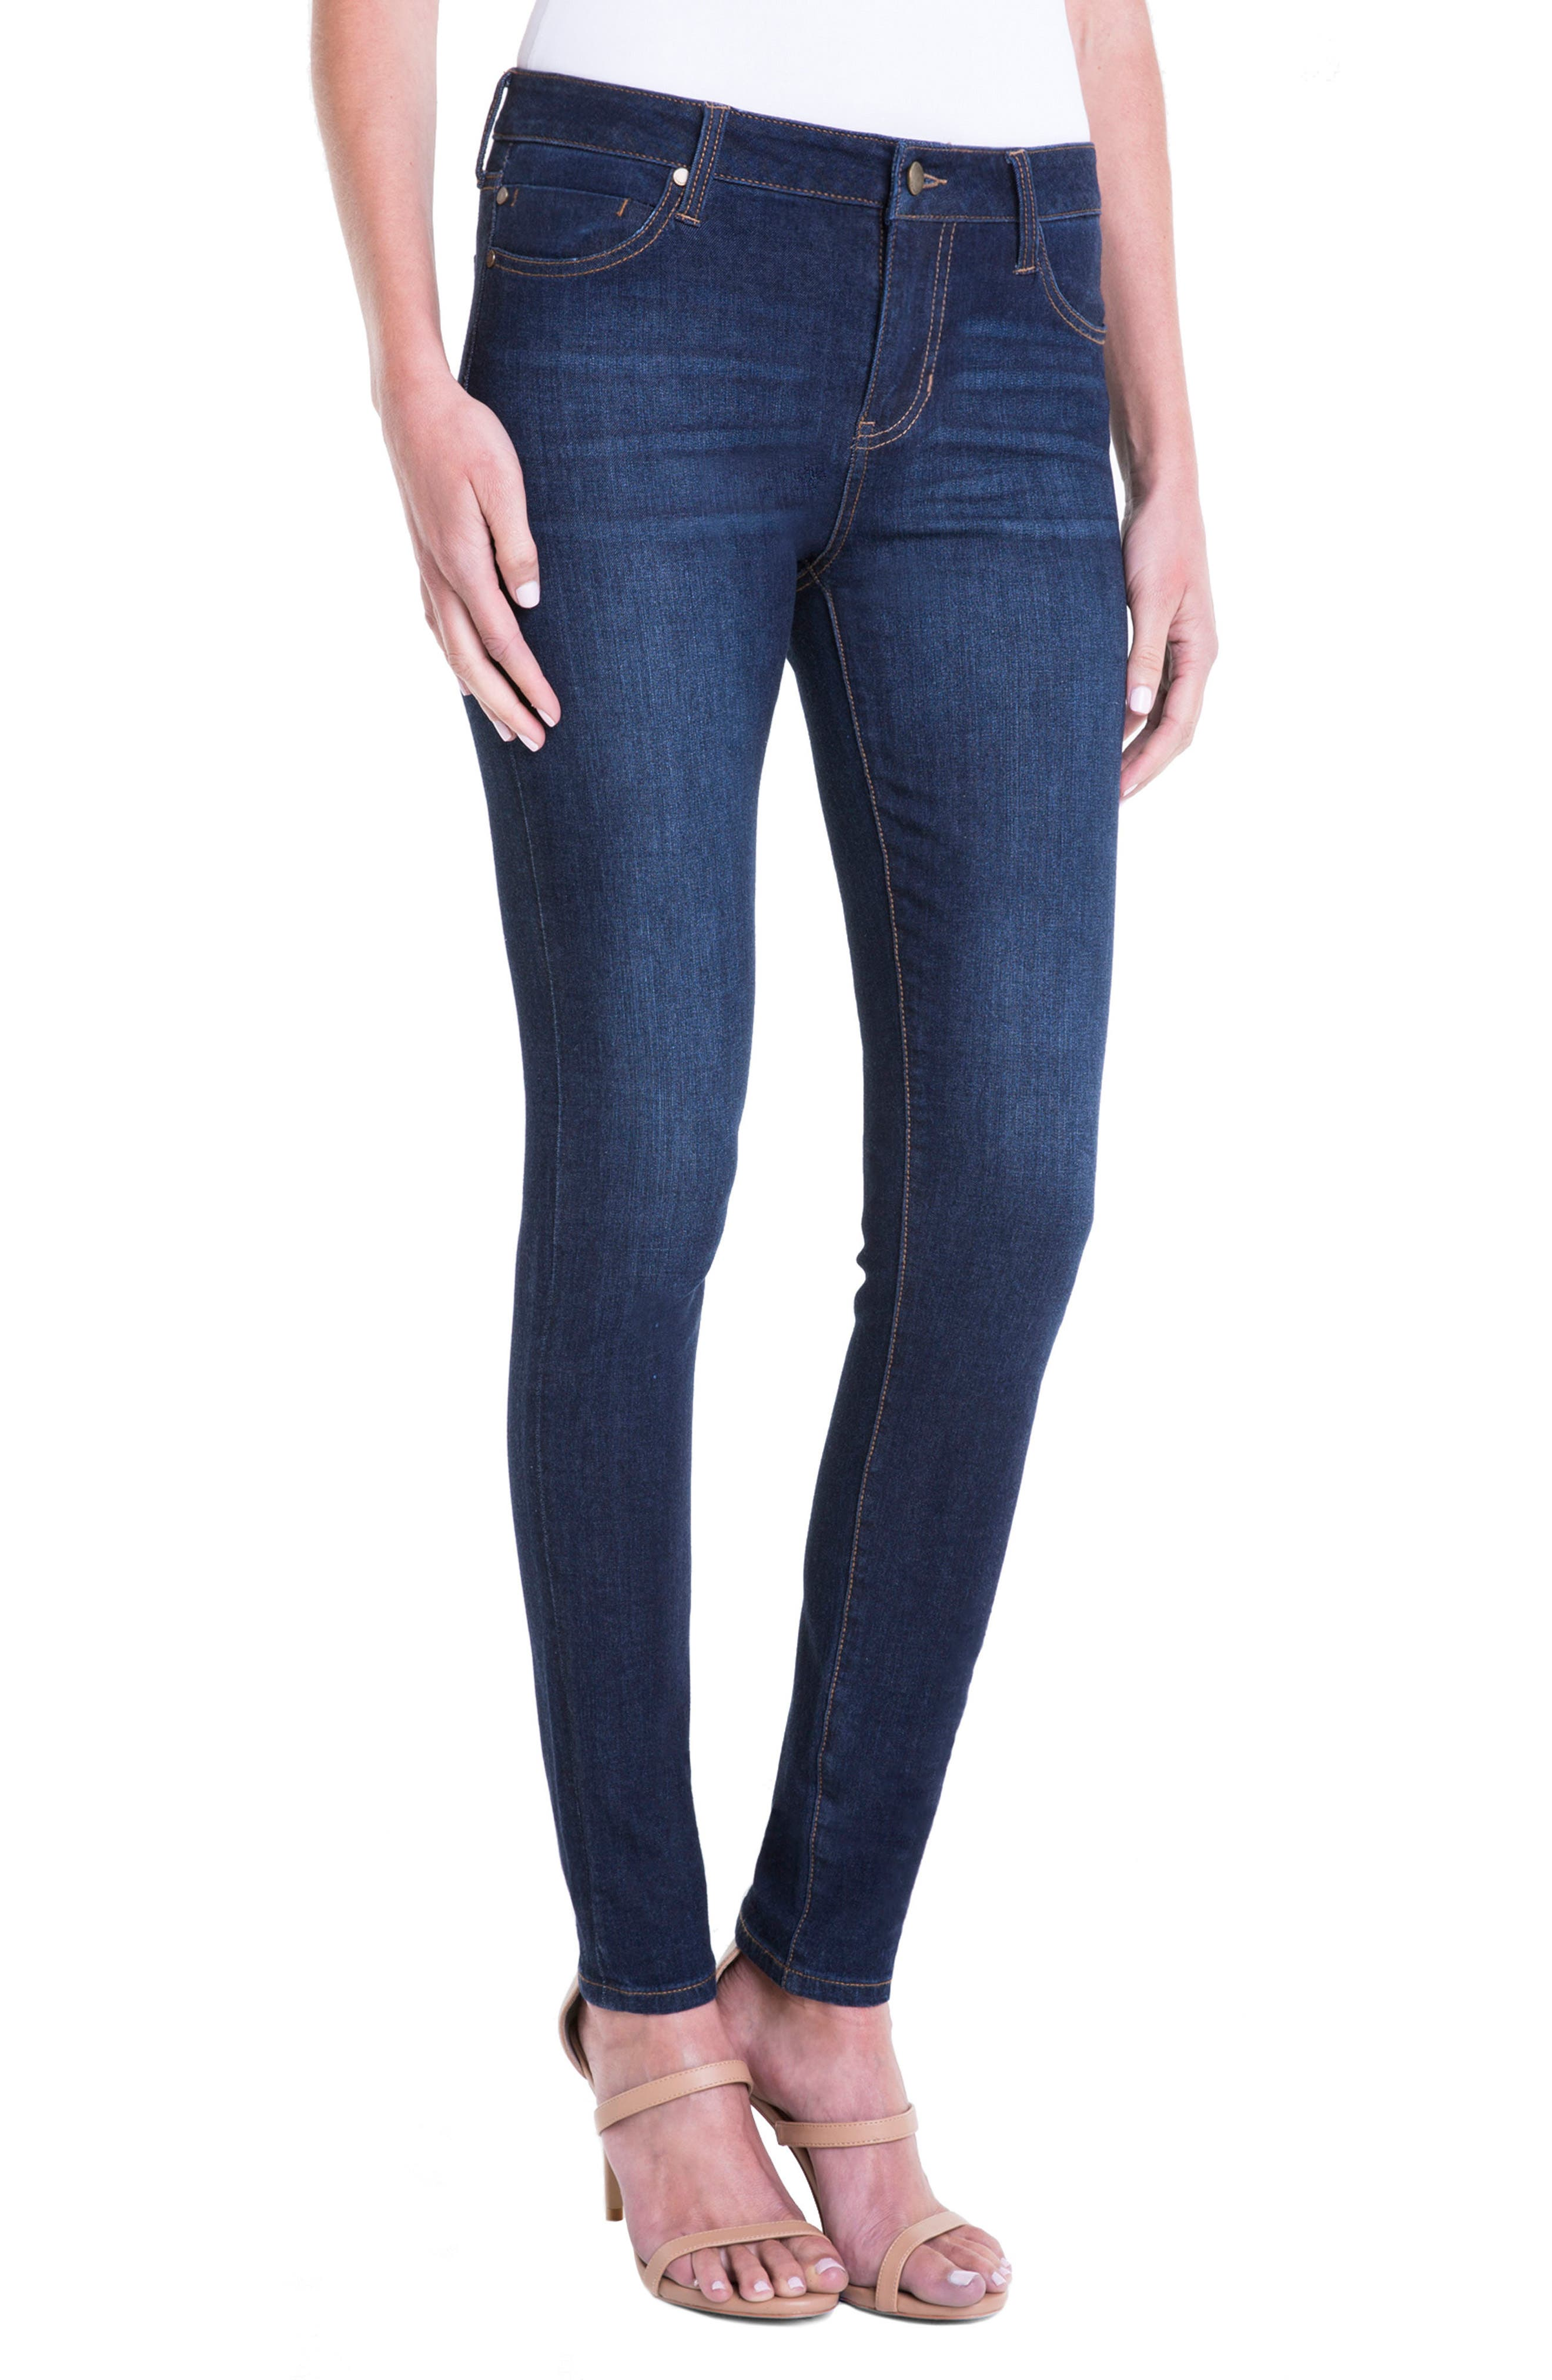 Abby Stretch Curvy Fit Skinny Jeans,                             Alternate thumbnail 4, color,                             401